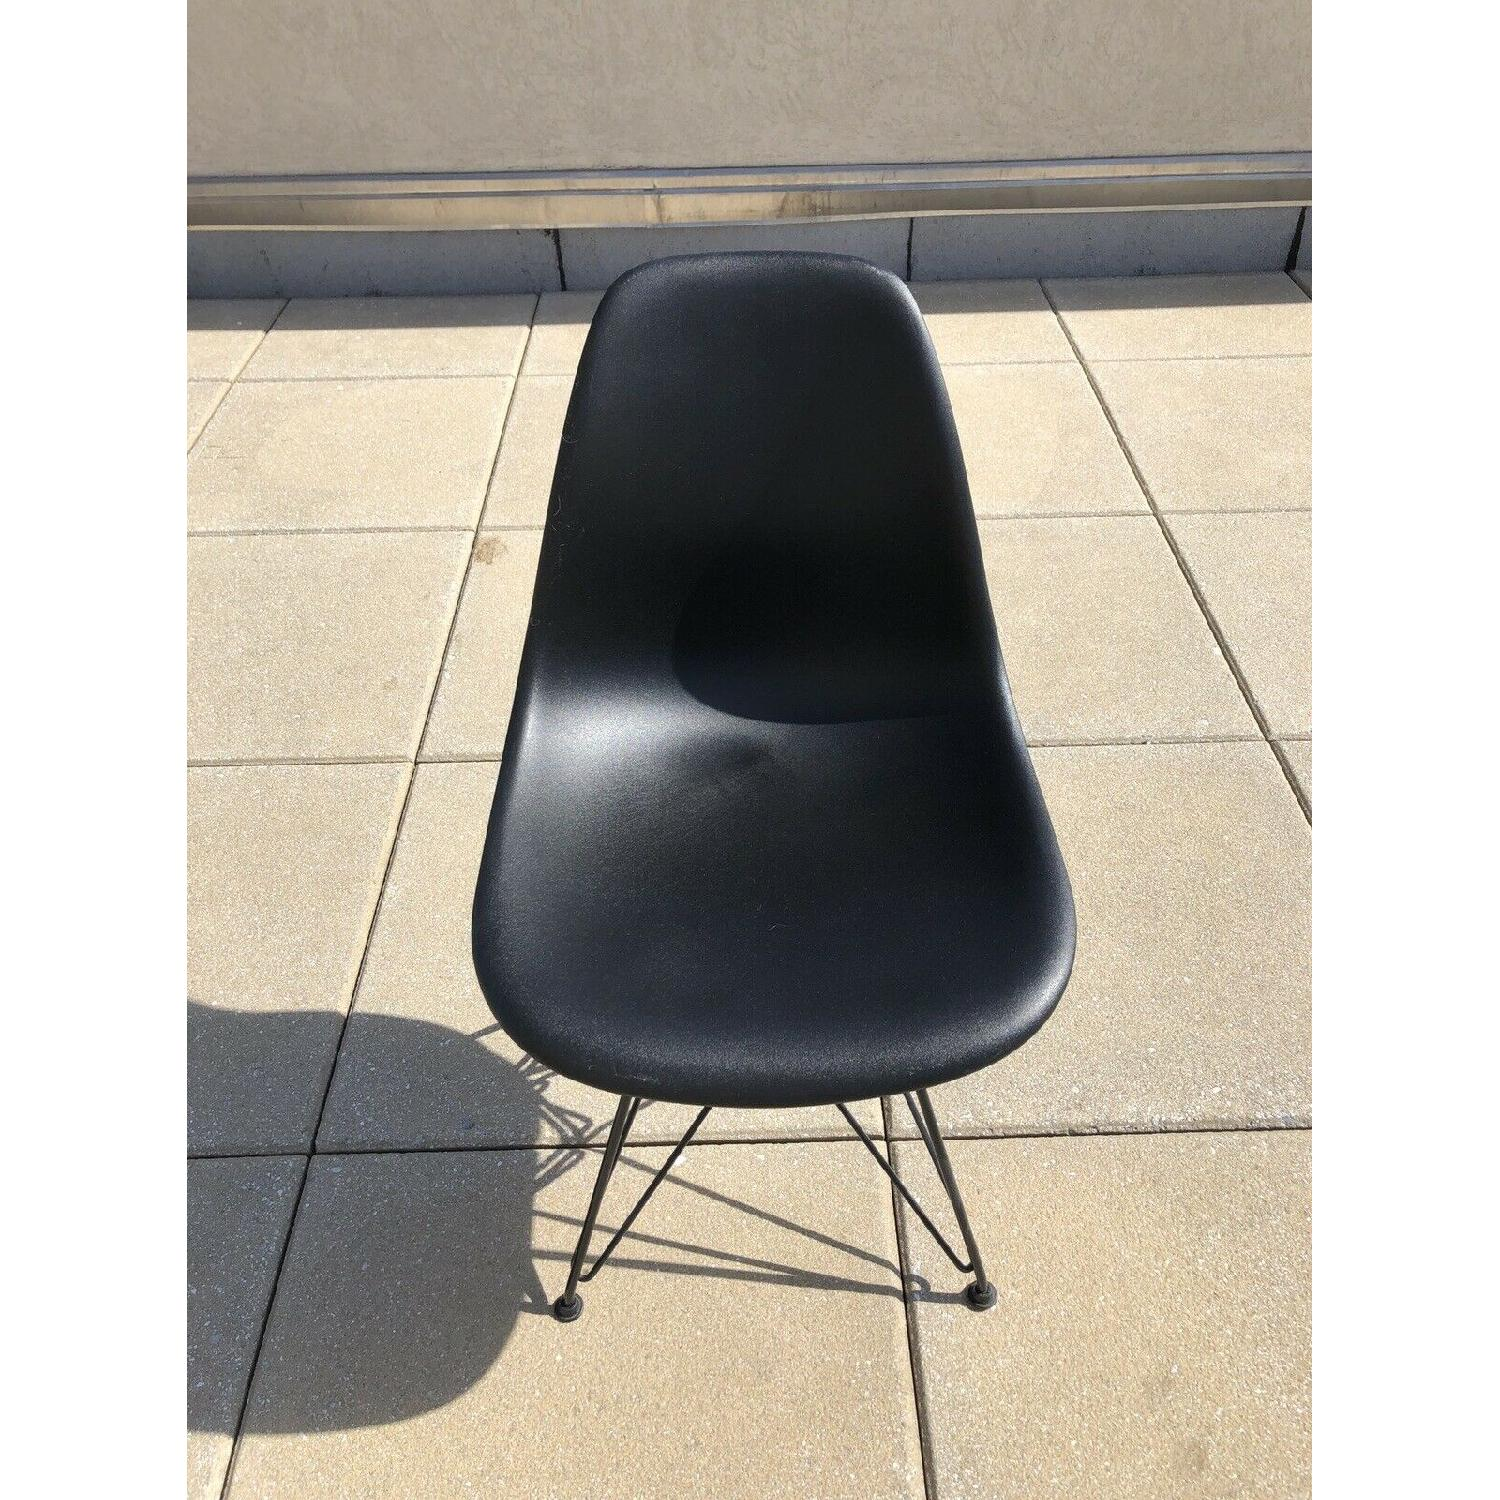 Eames Molded Plastic Black Wire Base Side Chairs - image-1